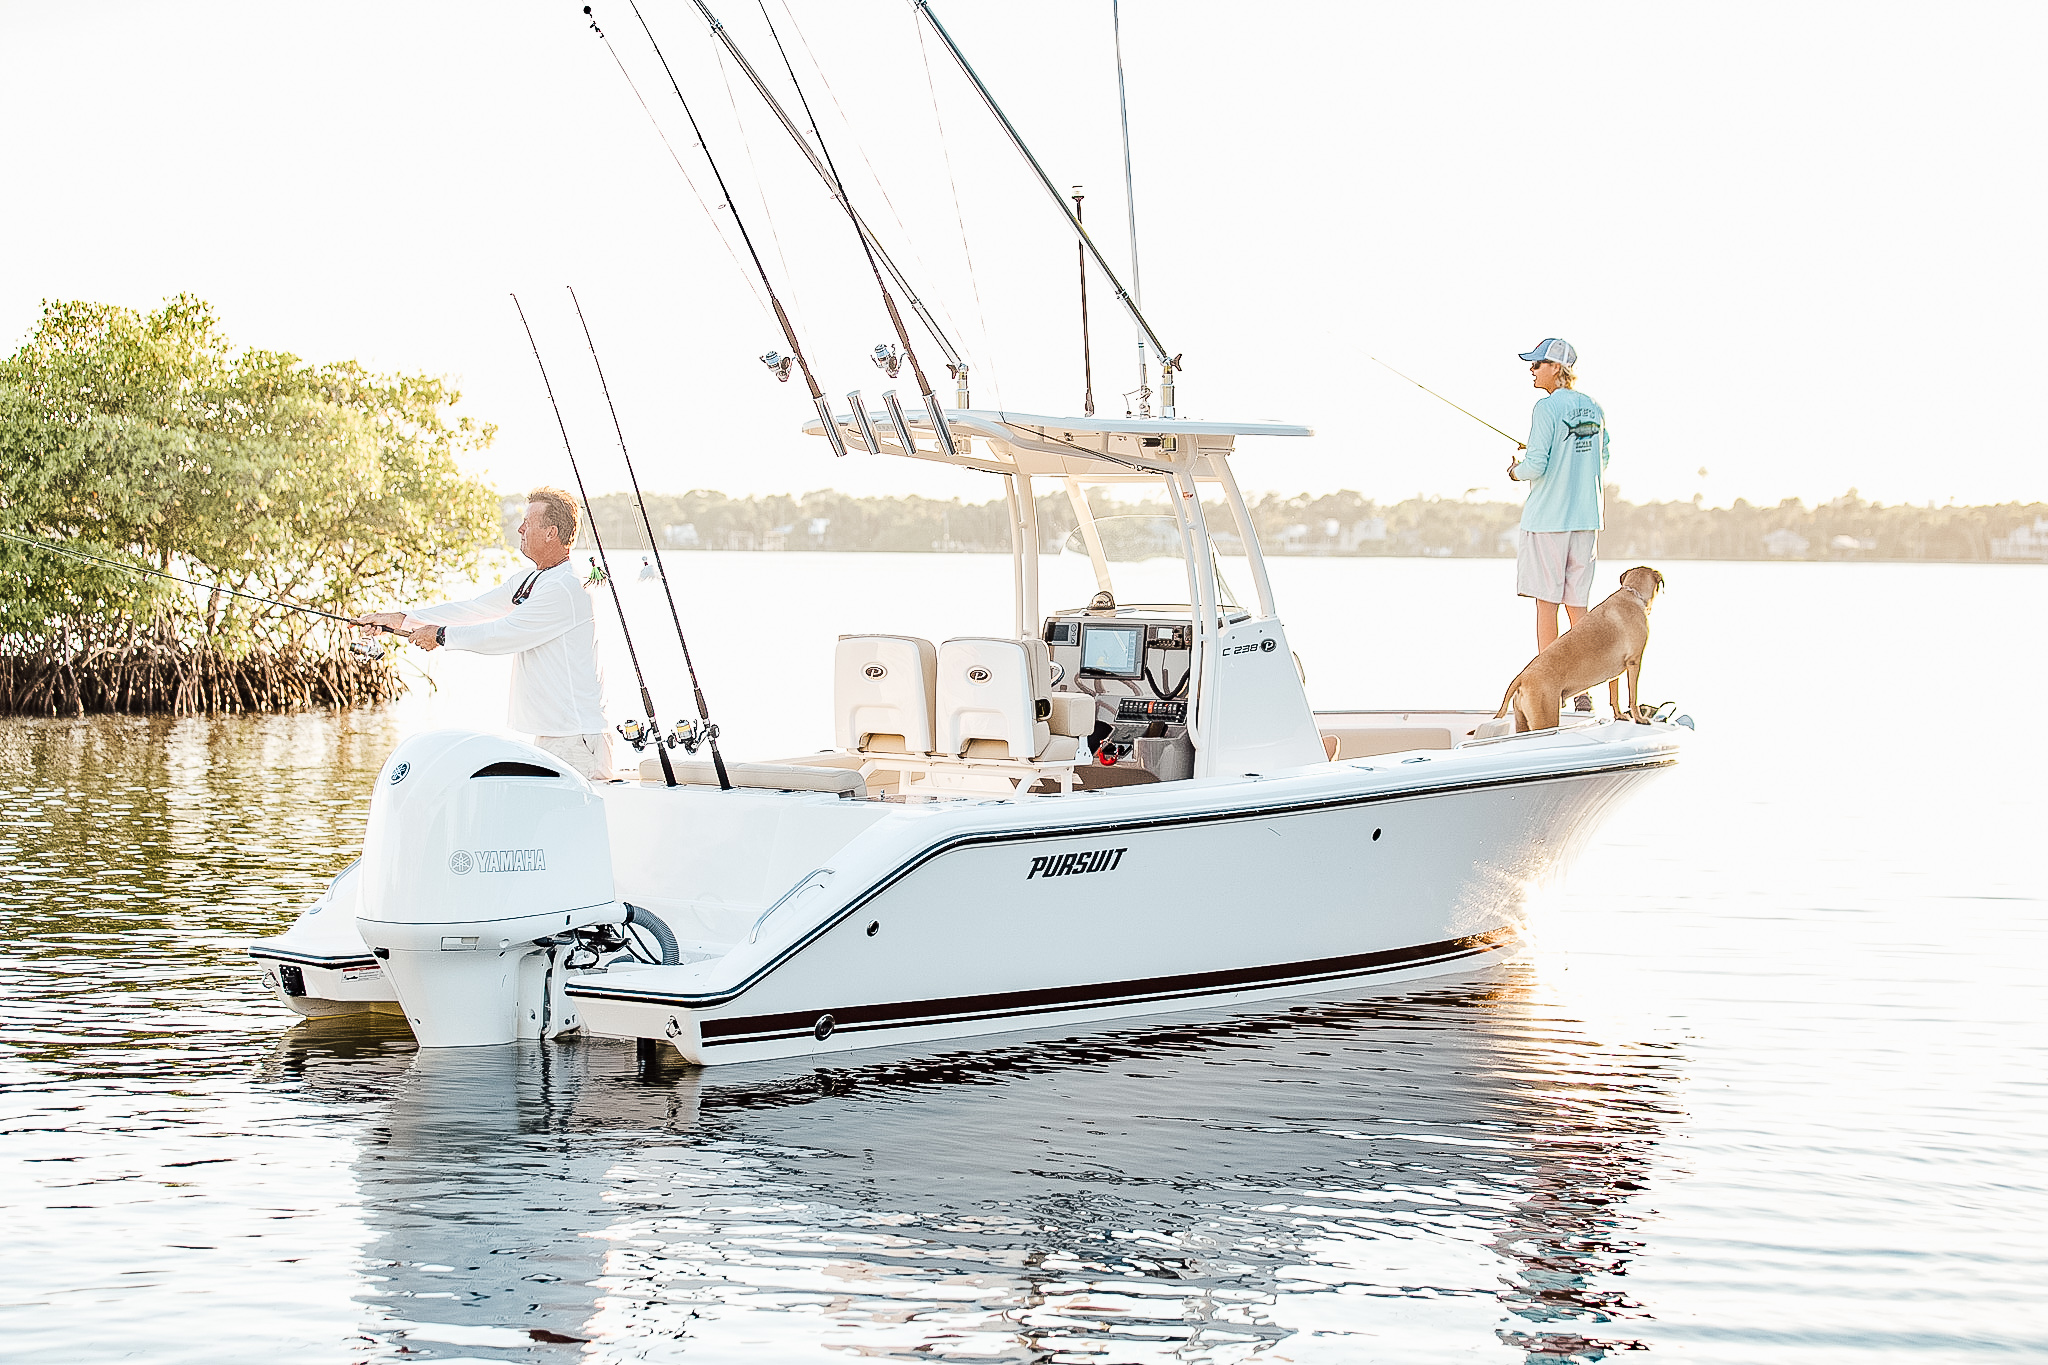 PURSUIT - Pursuit offers incomparable fishing and cruising boats from 20-40+ feet. Renowned for their masterful engineering, yacht-quality amenities, rugged durability, and innovative styling, it's a high quality product.